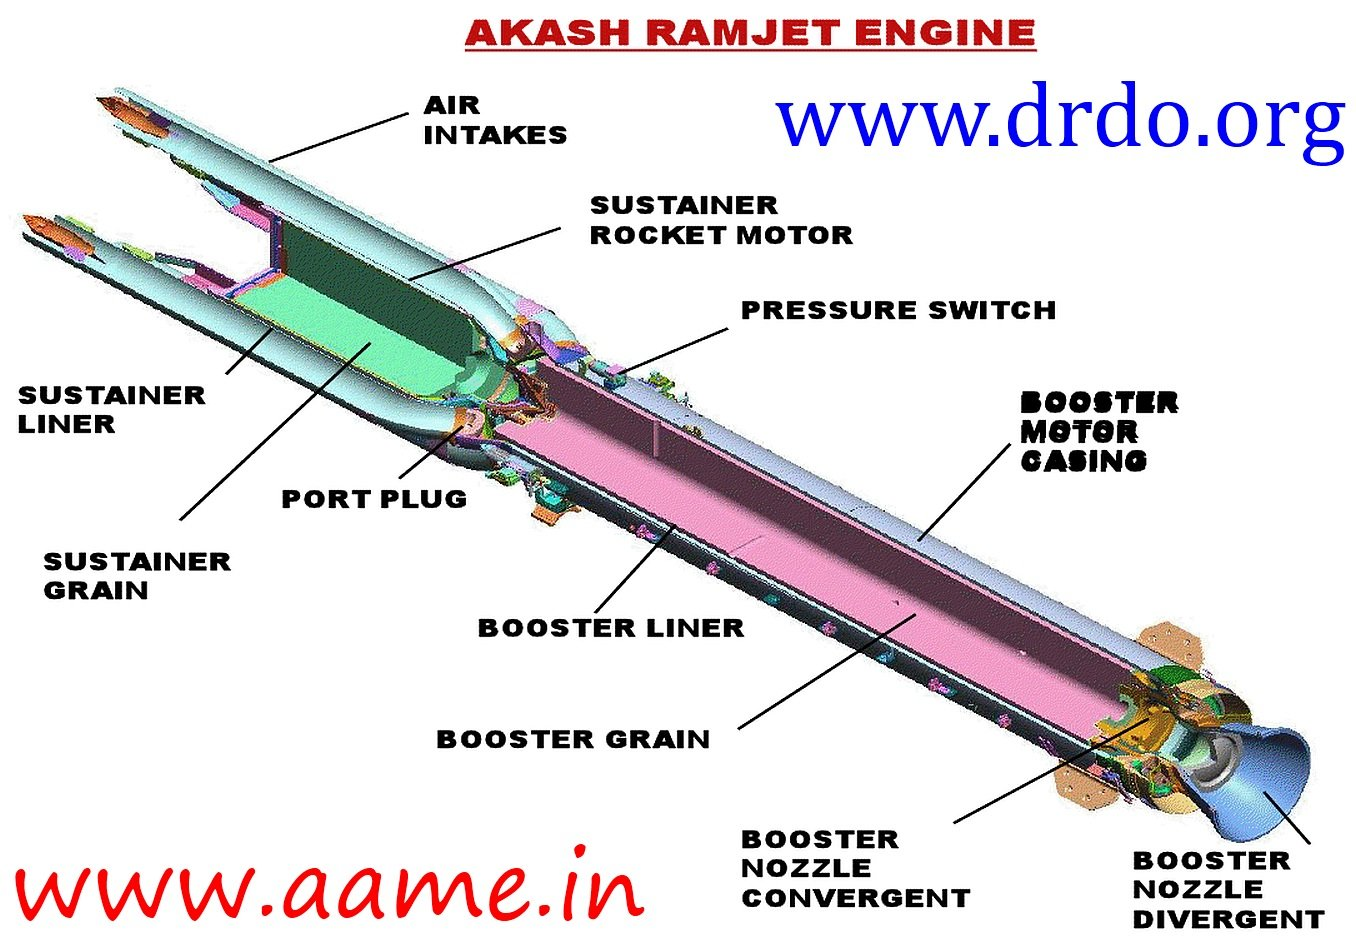 Akash-Missile-Ramjet-Engine-Cut-Section-01.jpg